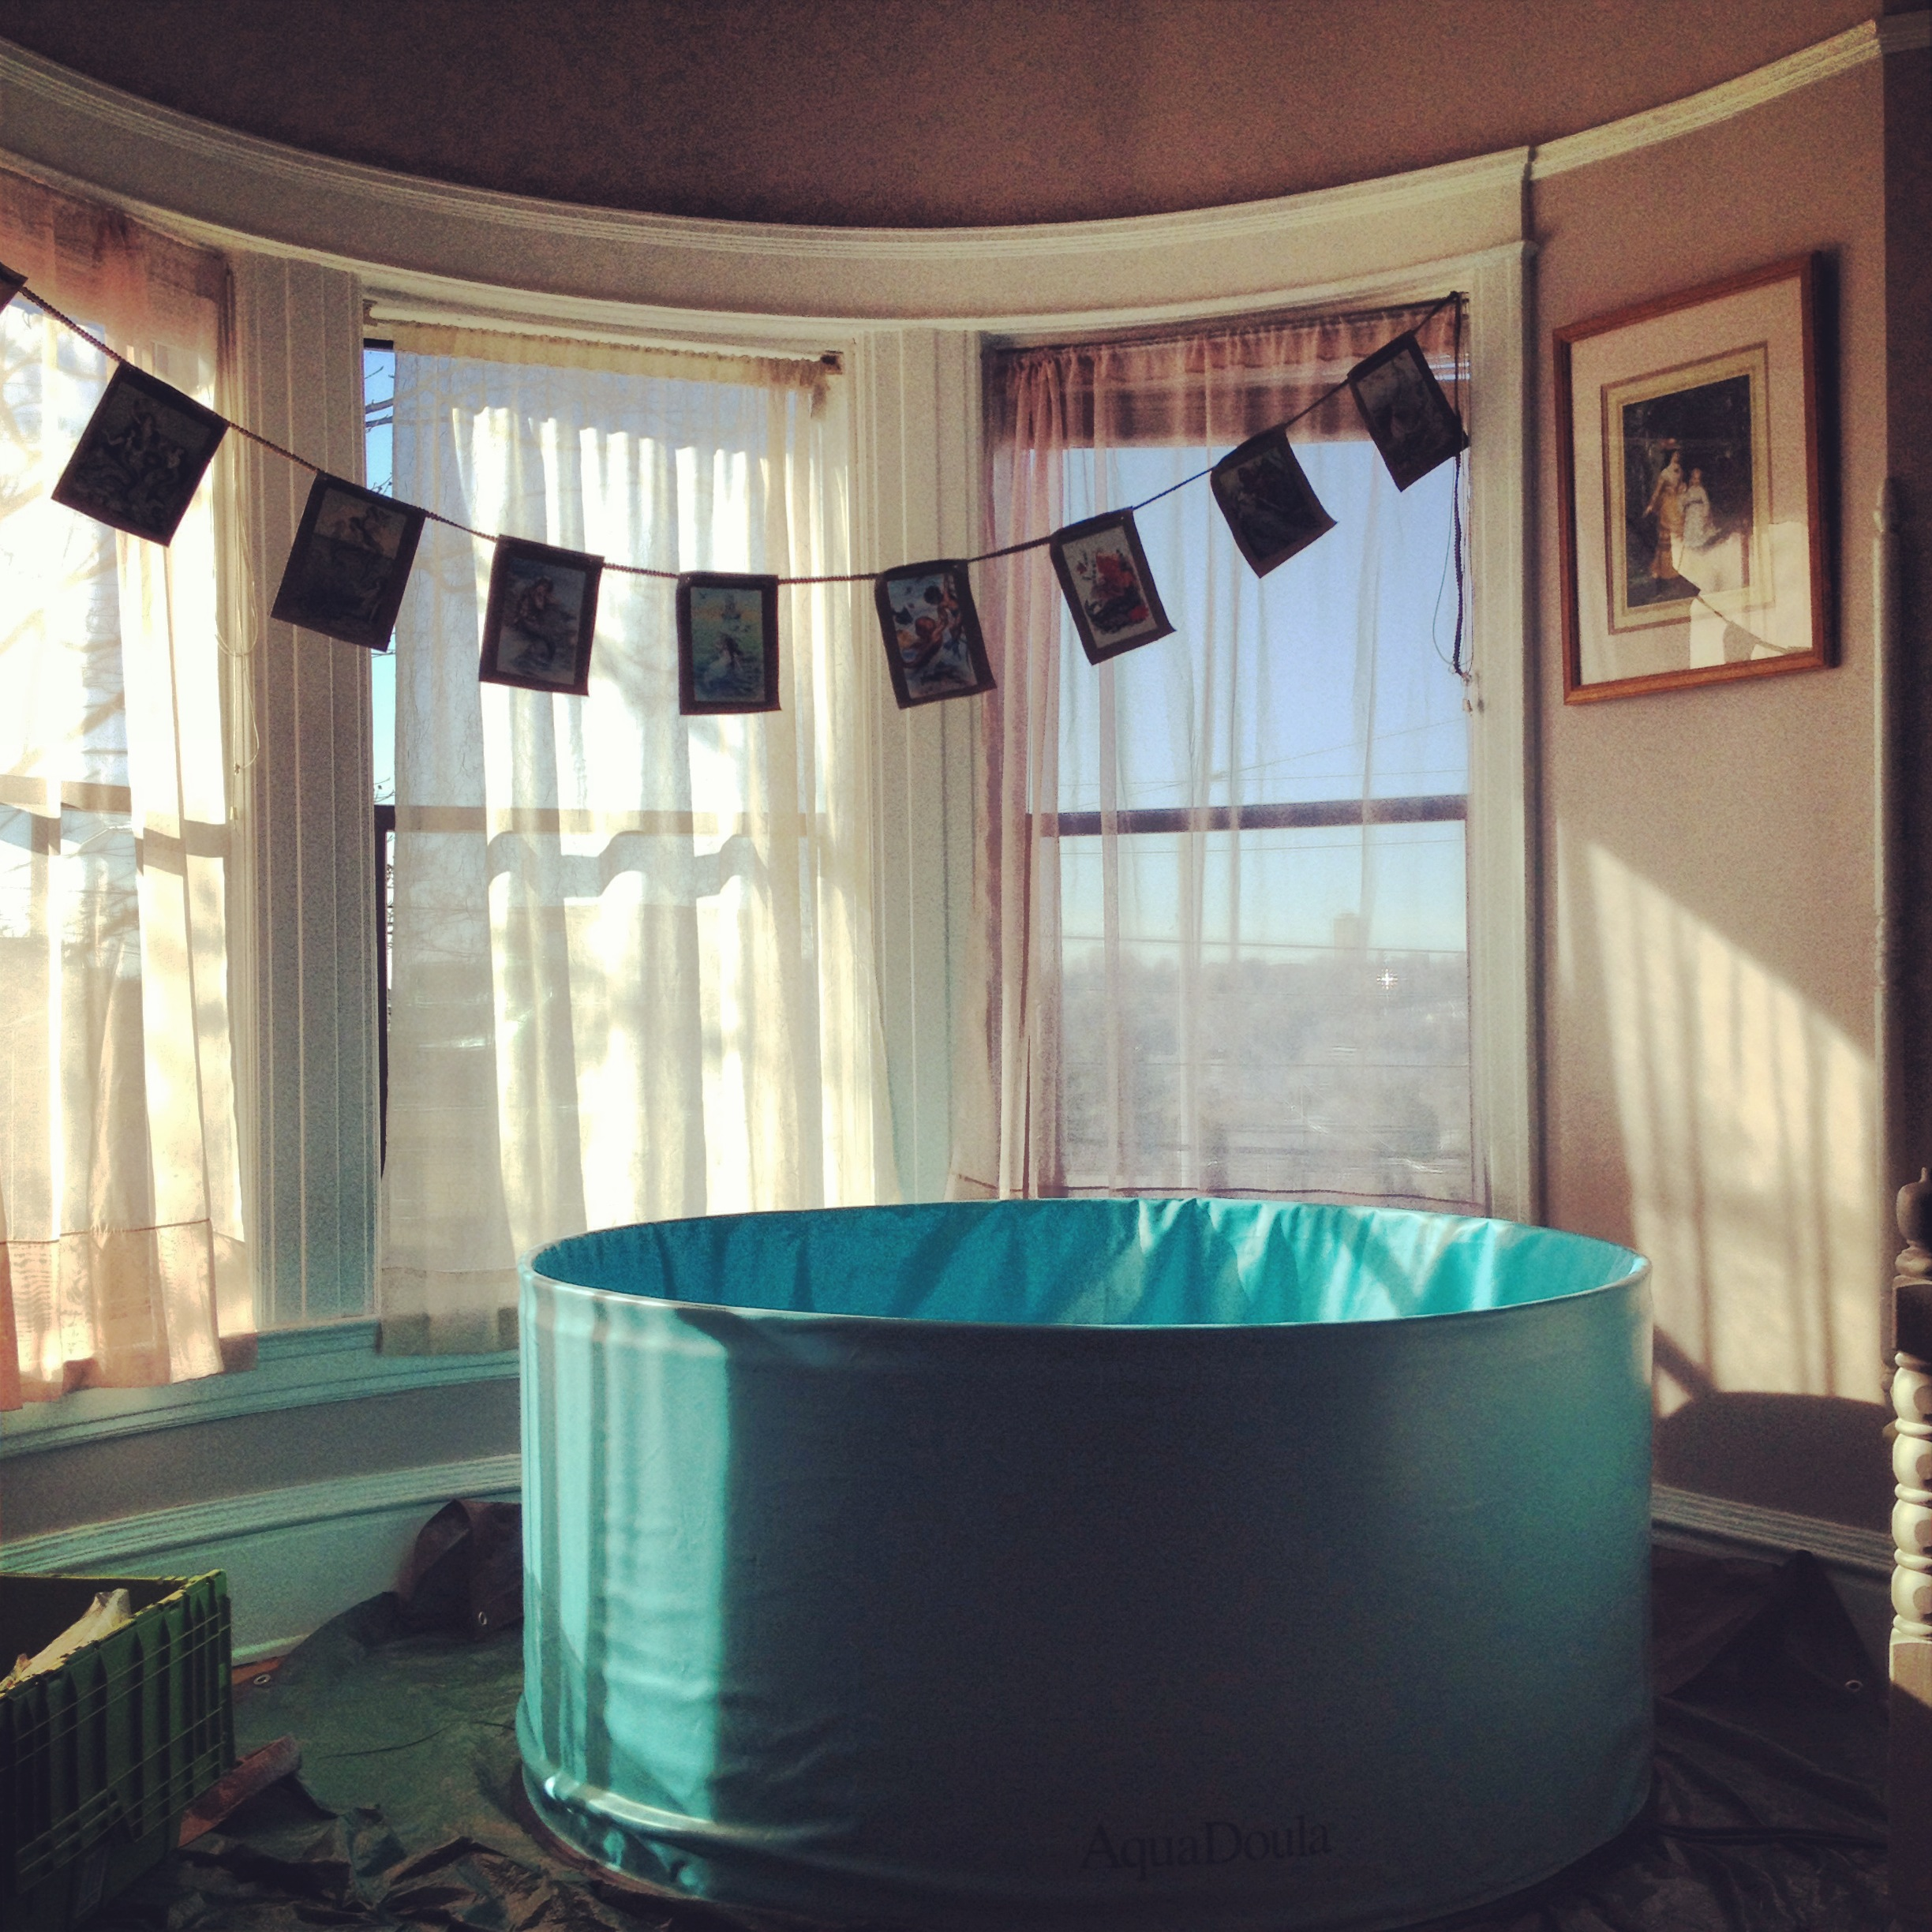 At-home birthing tub